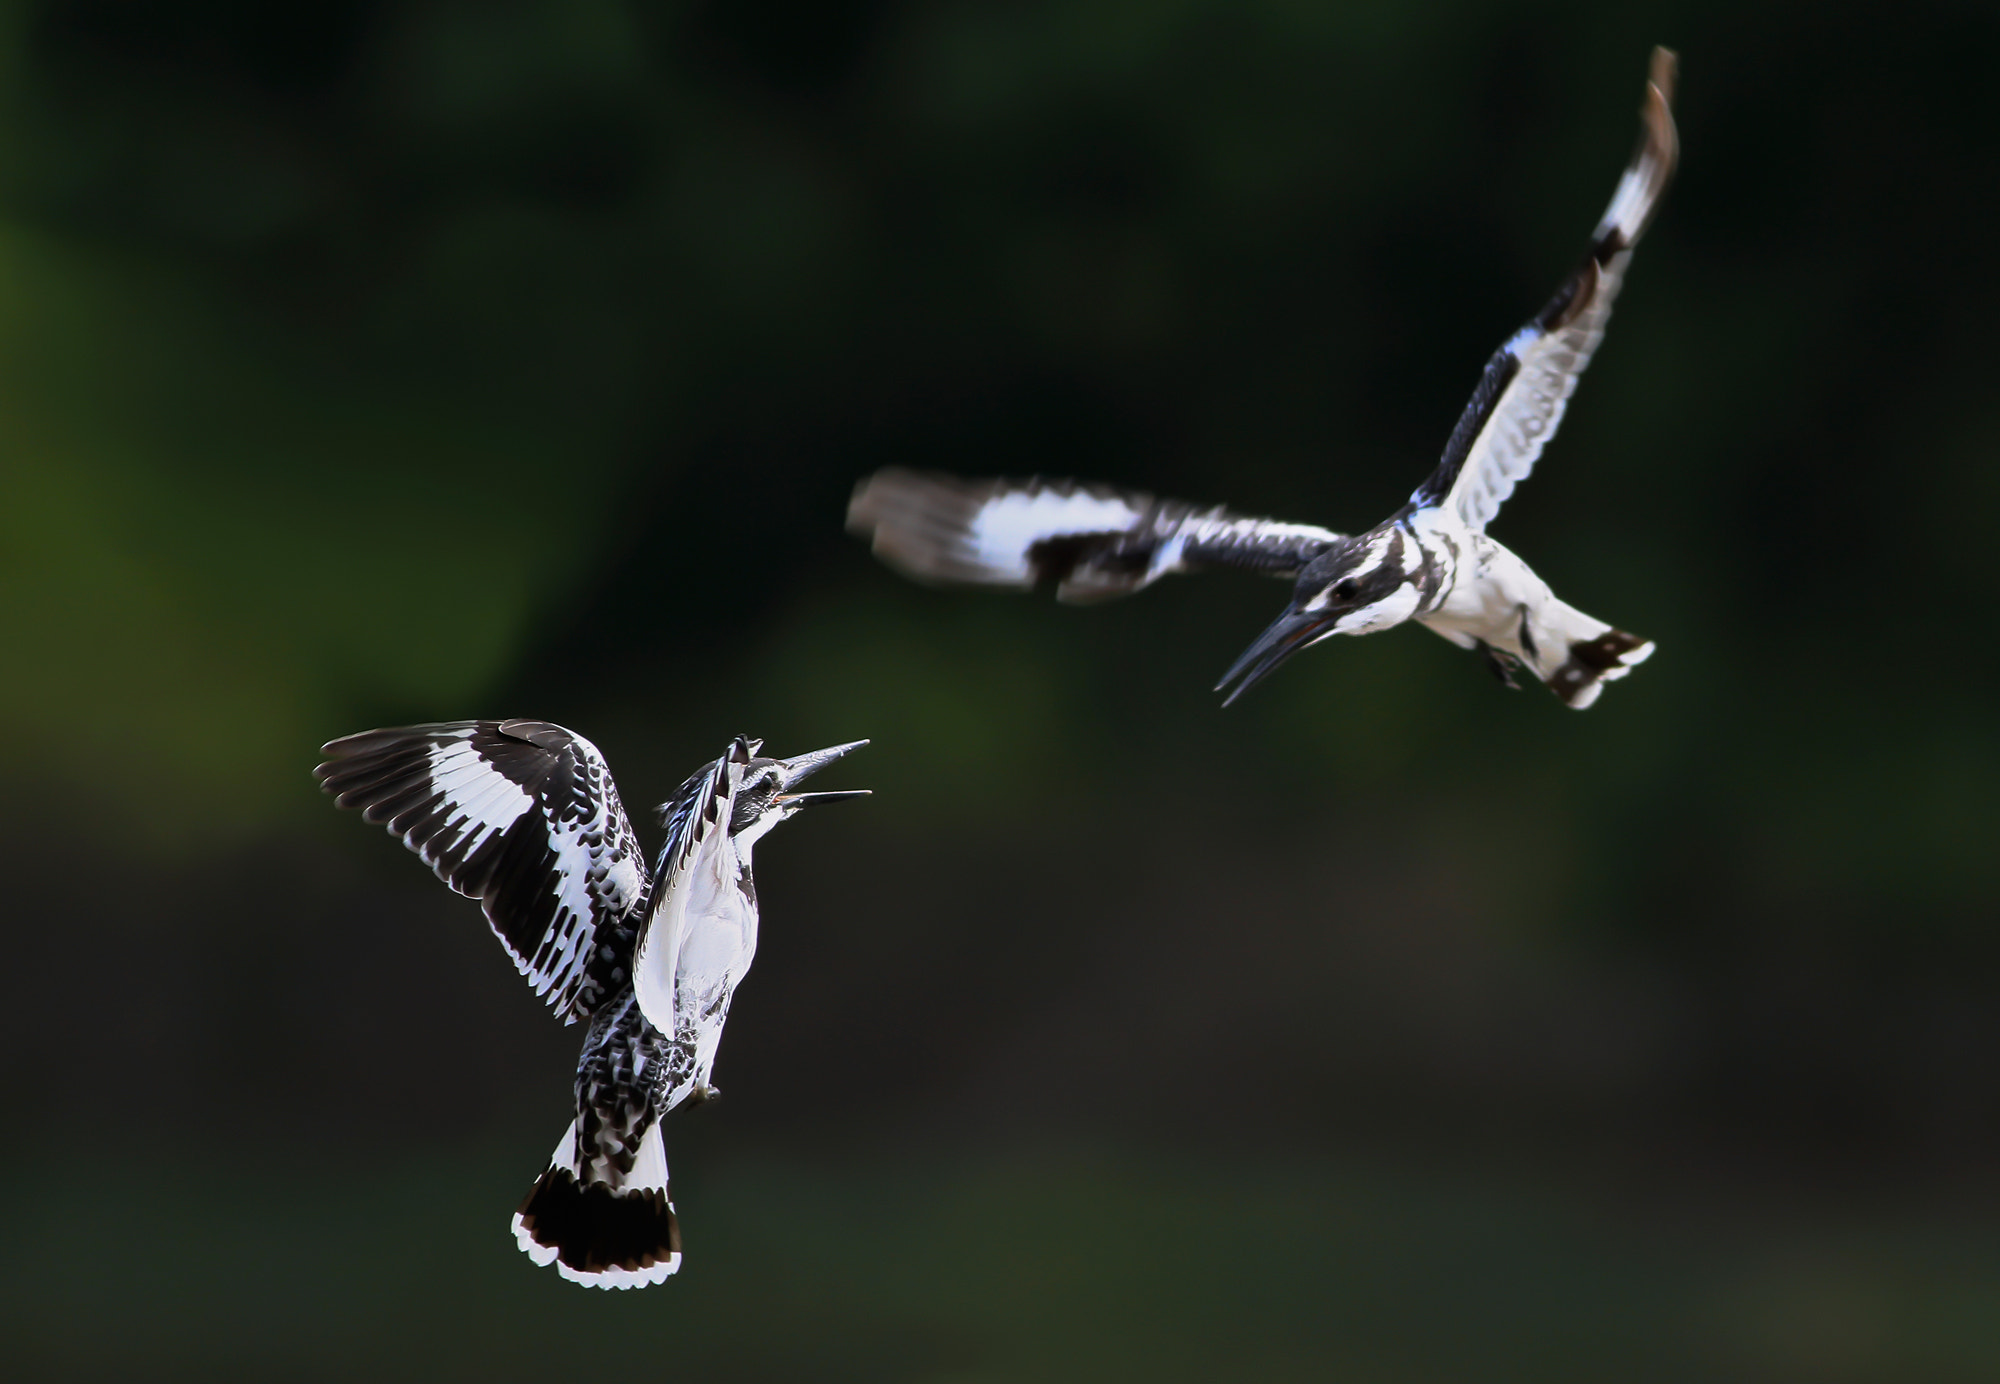 Photograph Flying Battle 3 by sethapol tiptongdee on 500px